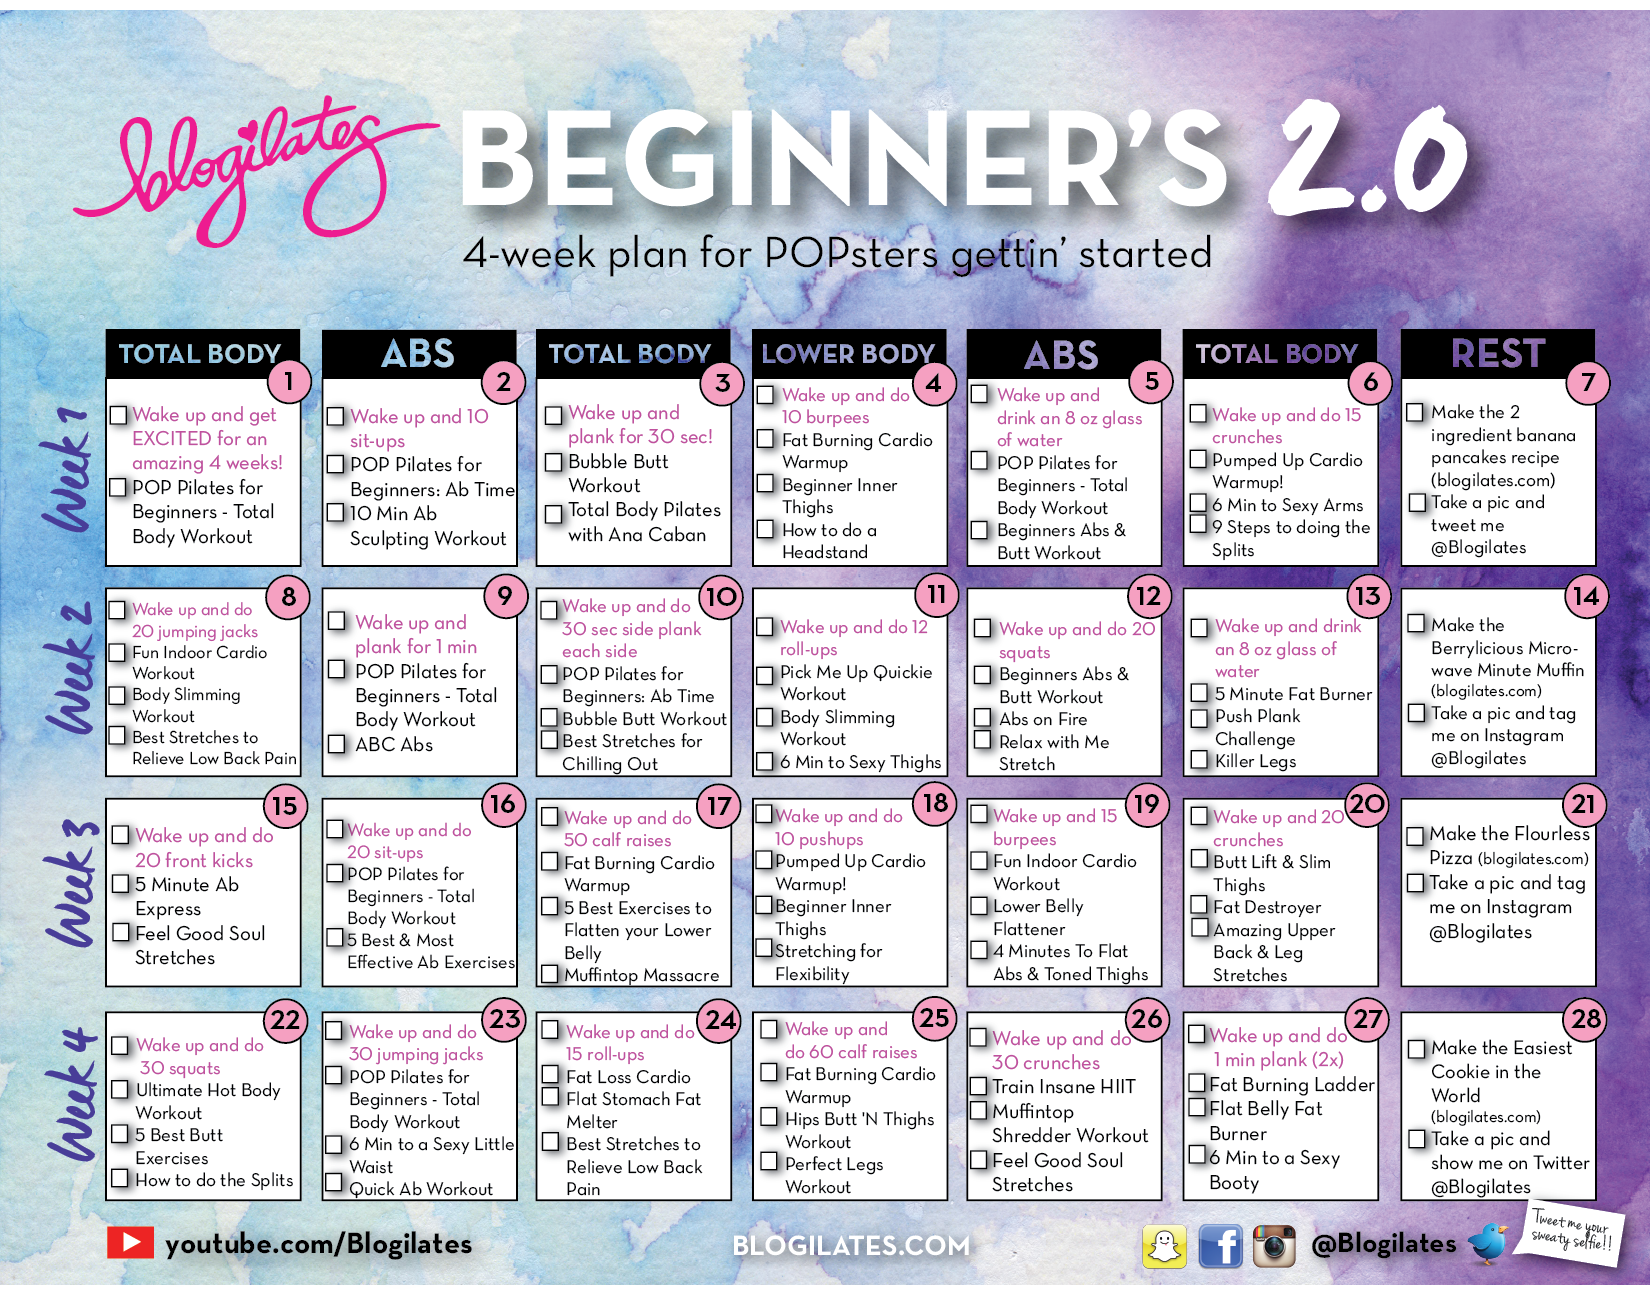 Geliebte NEW Beginners Calendar 2.0 – Blogilates HQ76